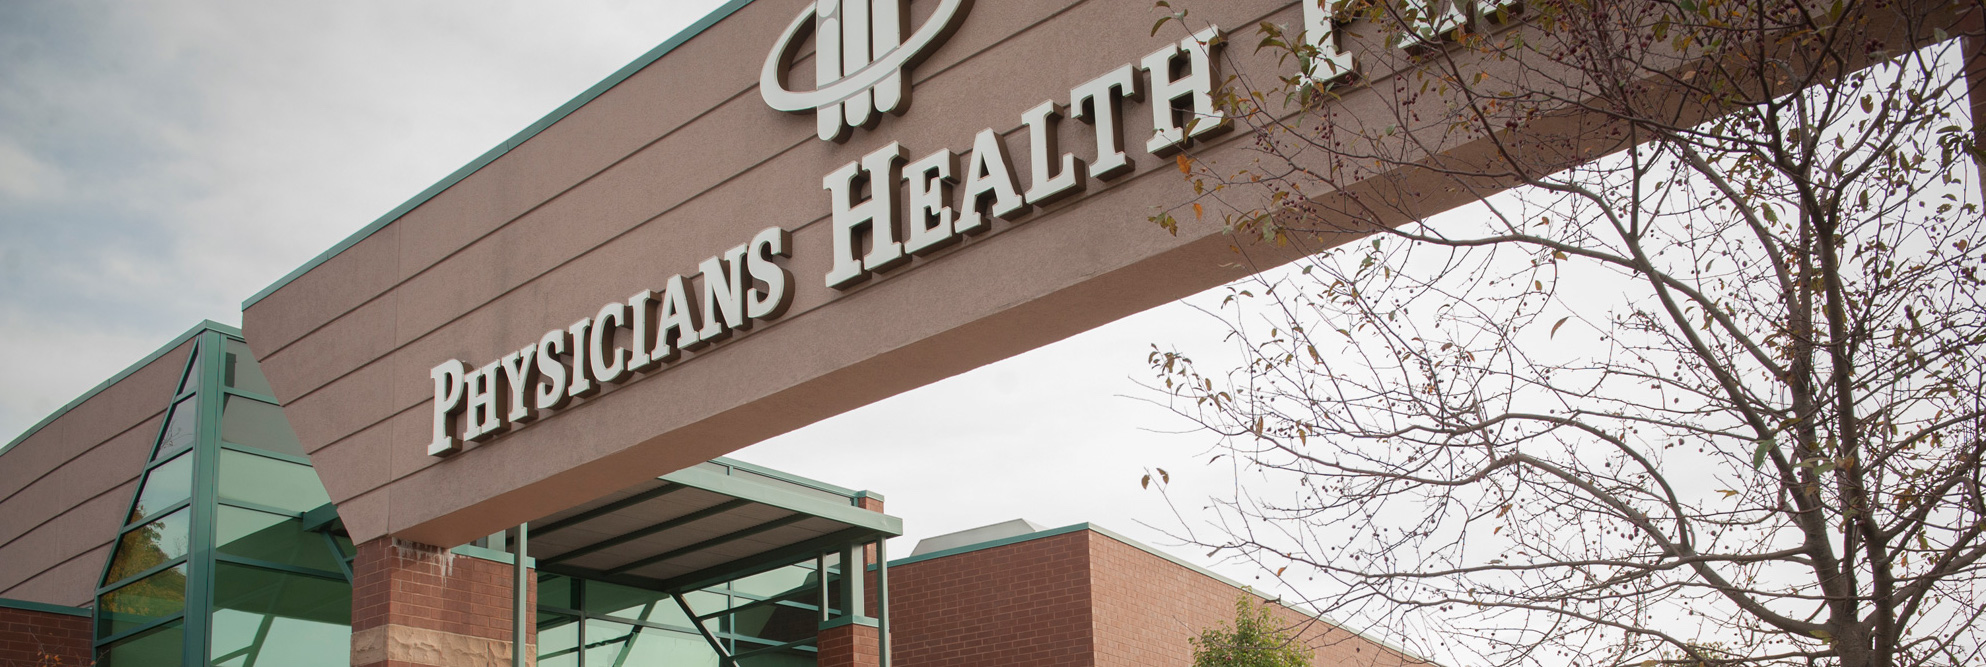 An external view of the Physicians Health Plan building in Fort Wayne, IN.